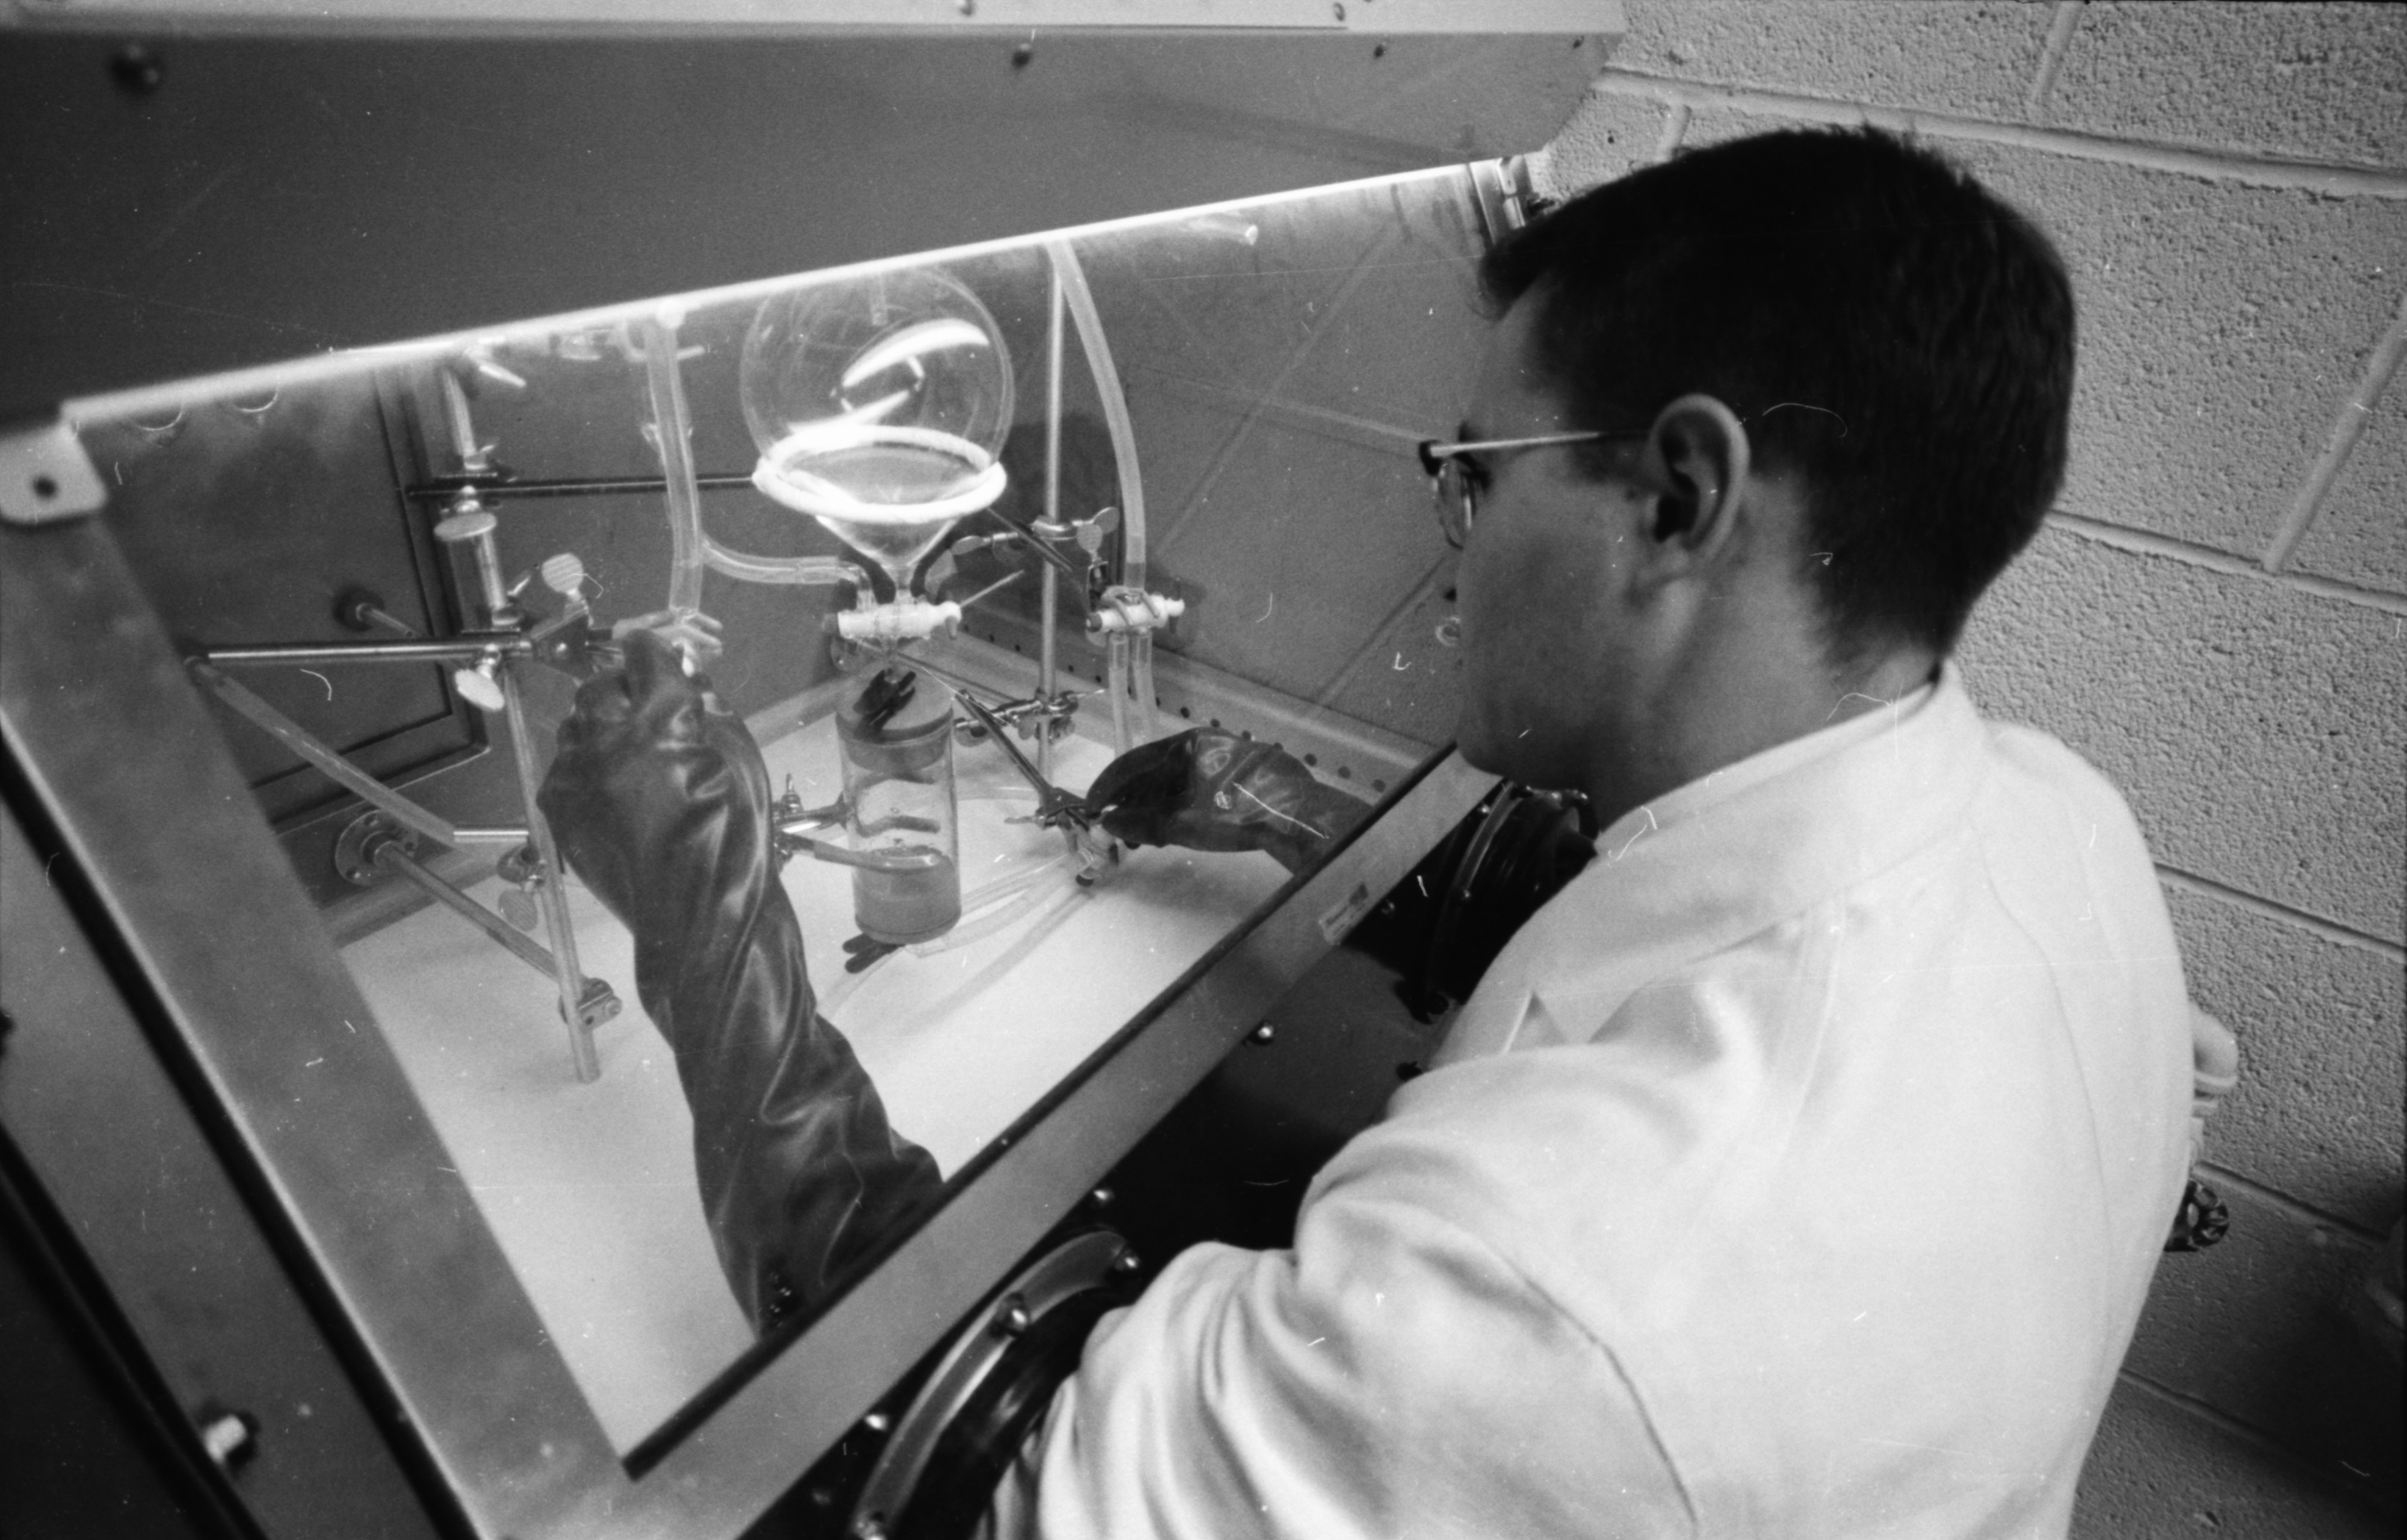 Dr. John Marshall, U-M research associate, at the Phoenix Memorial Laboratory, August 1961 image